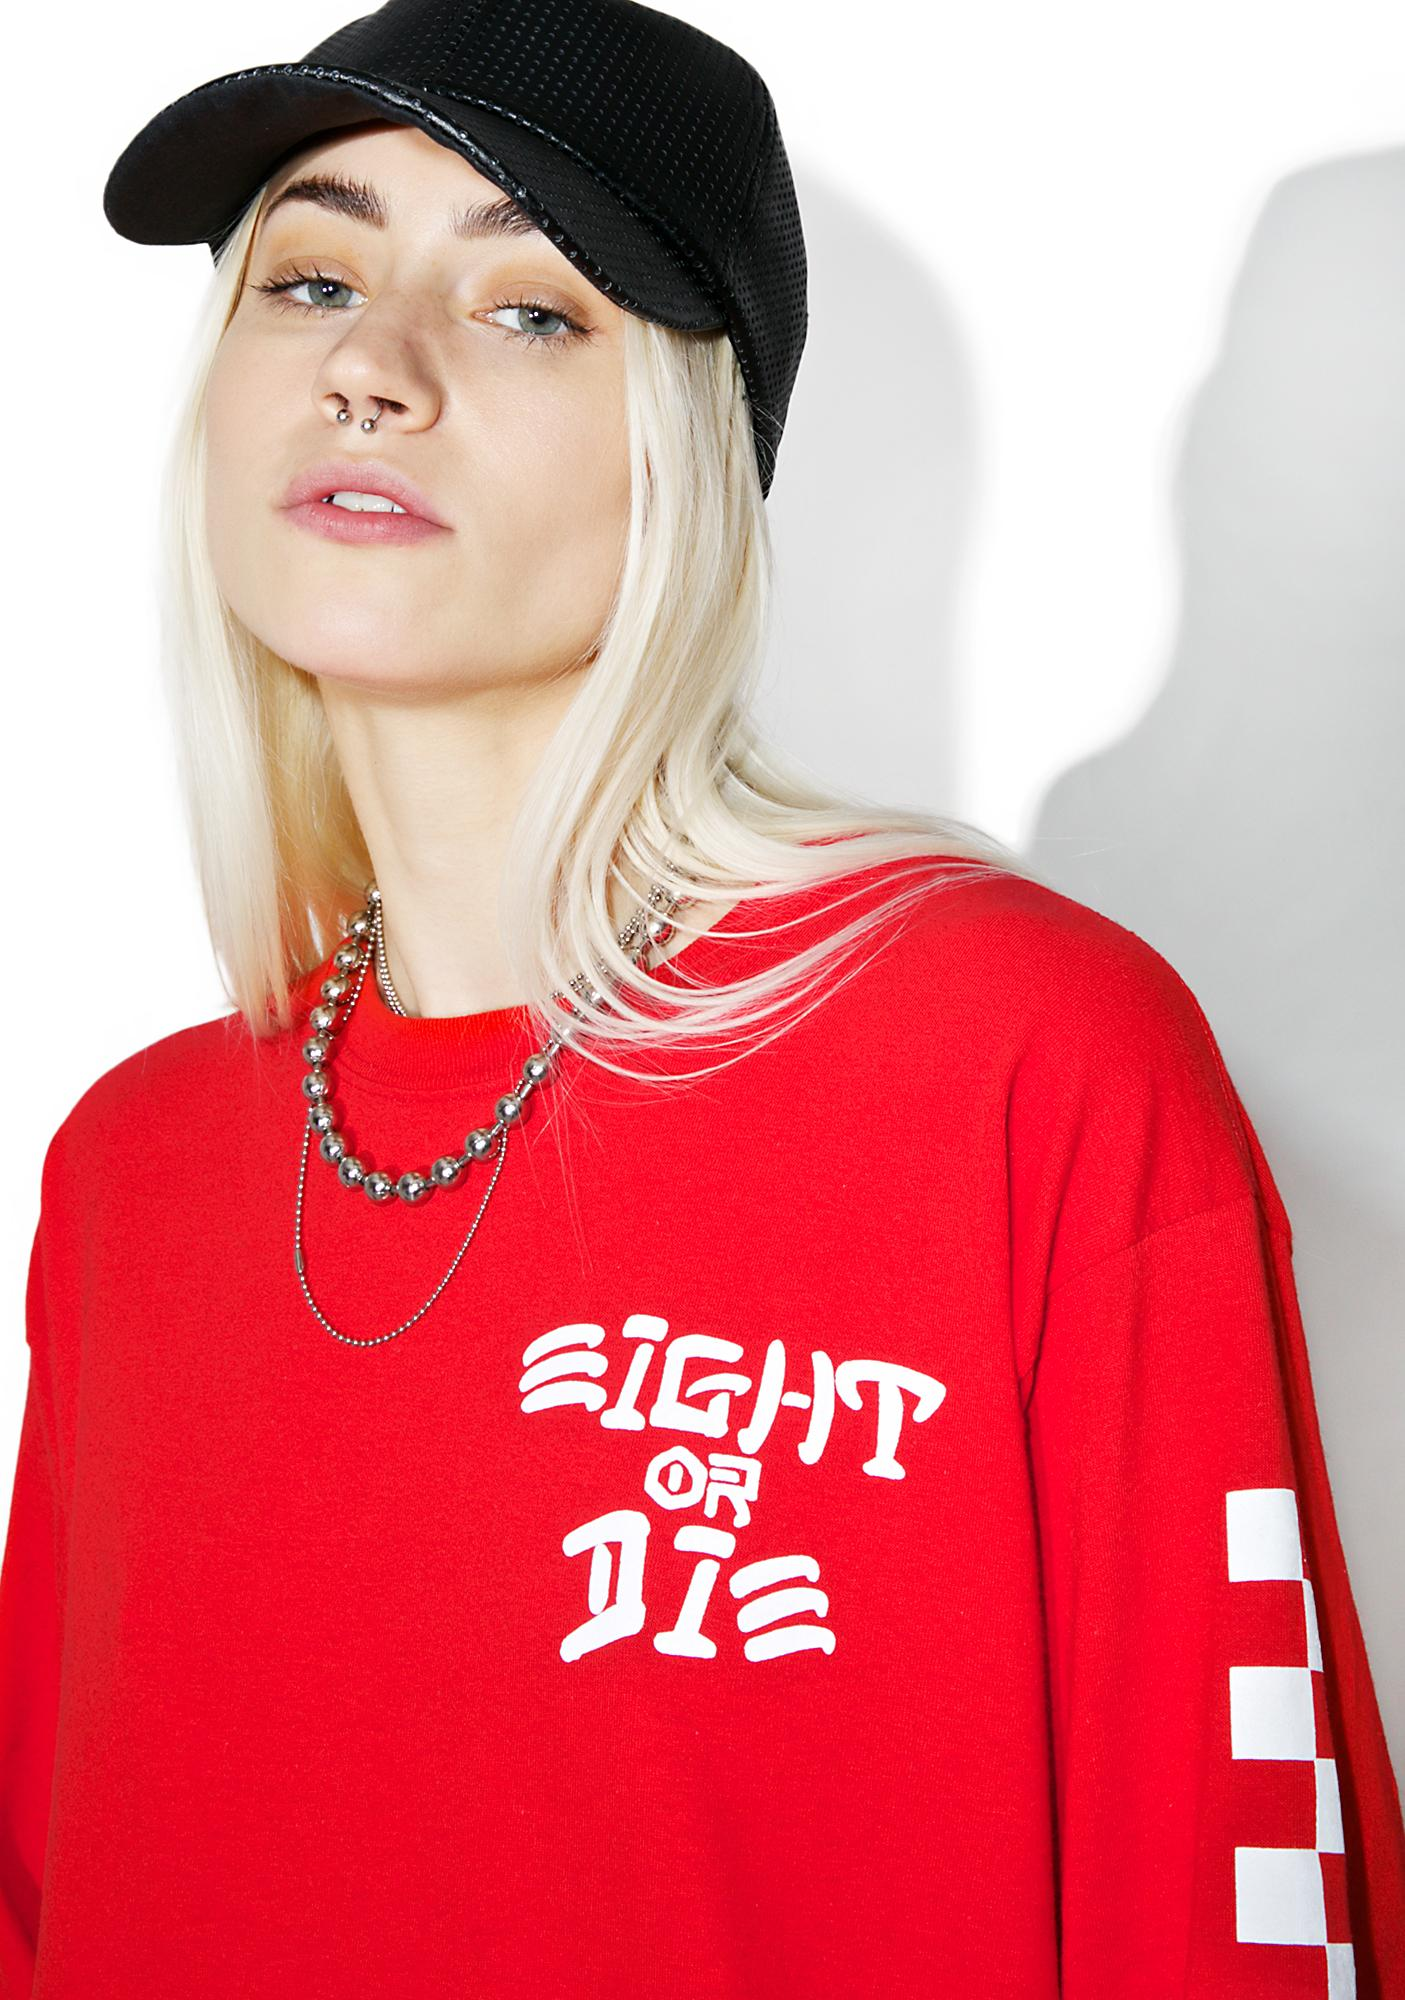 Rebel8 Eight Or Die Long Sleeve Tee